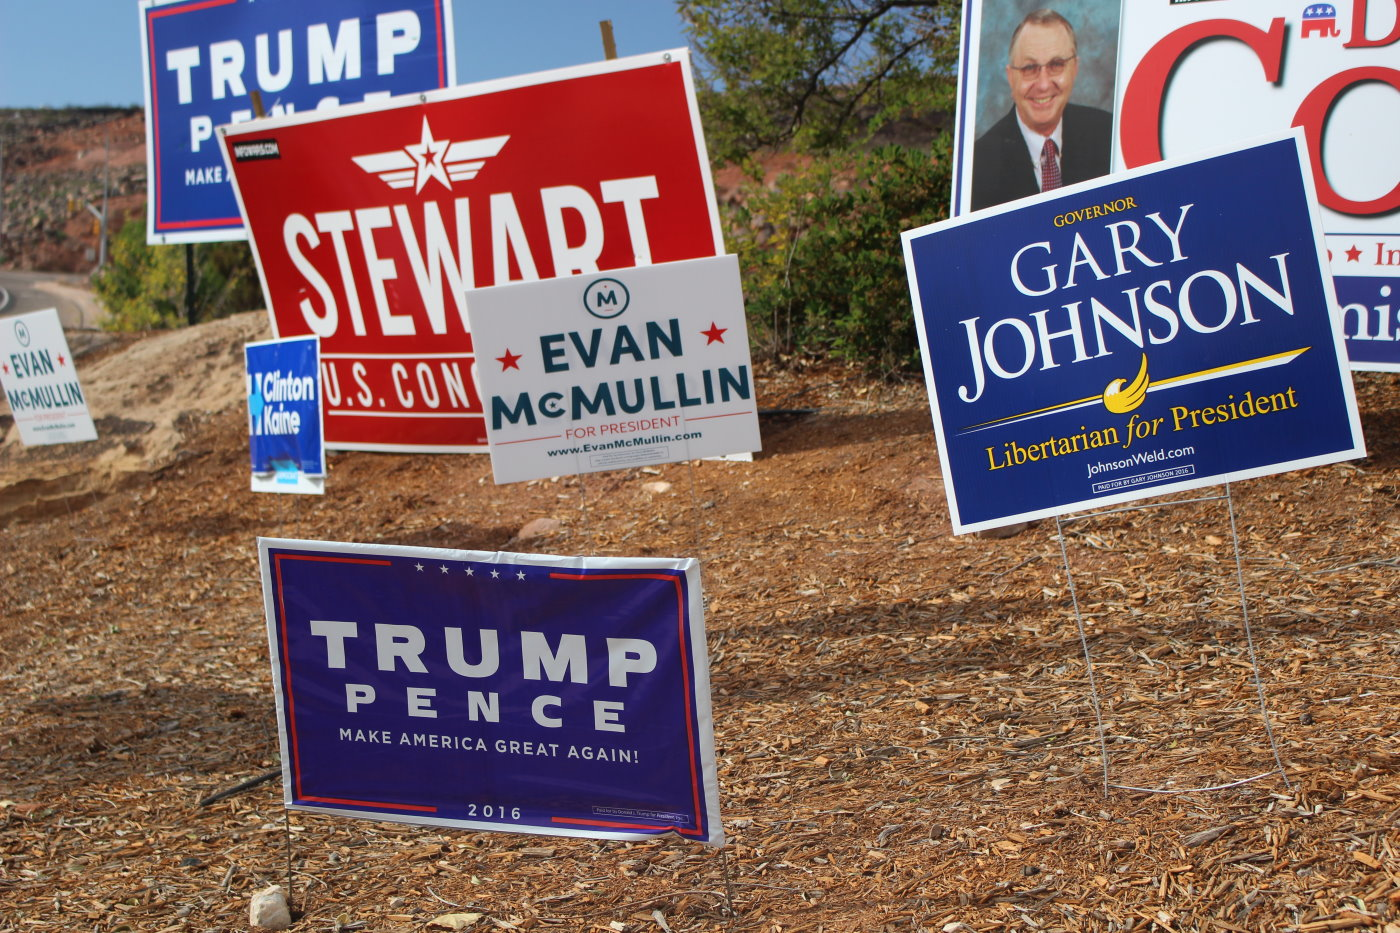 Campaign signs galore at the corner of Bluff Street and Black Ridge Drive, St. George, Utah, Nov. 4, 2016 | Photo by Mori Kessler, St. George News